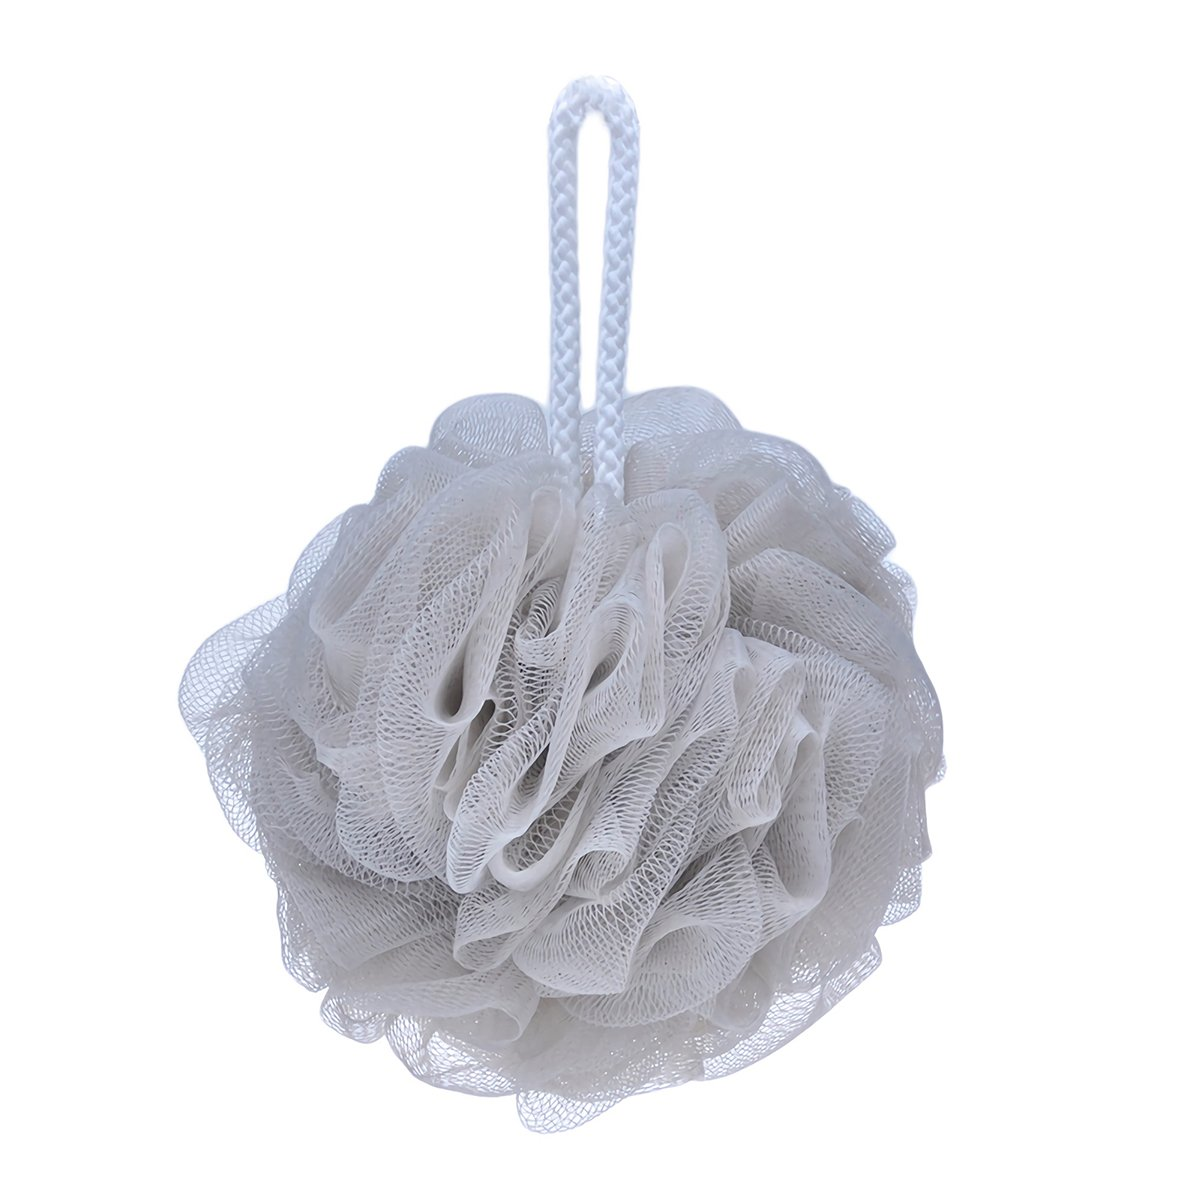 Bath Shower Sponge Loofahs With Soft Natural Loofah Bath Flower Bath Ball Scrubber Shower Puffs Body Cleaning Exfoliating Bath Shower Sponge Mesh (White) Suces